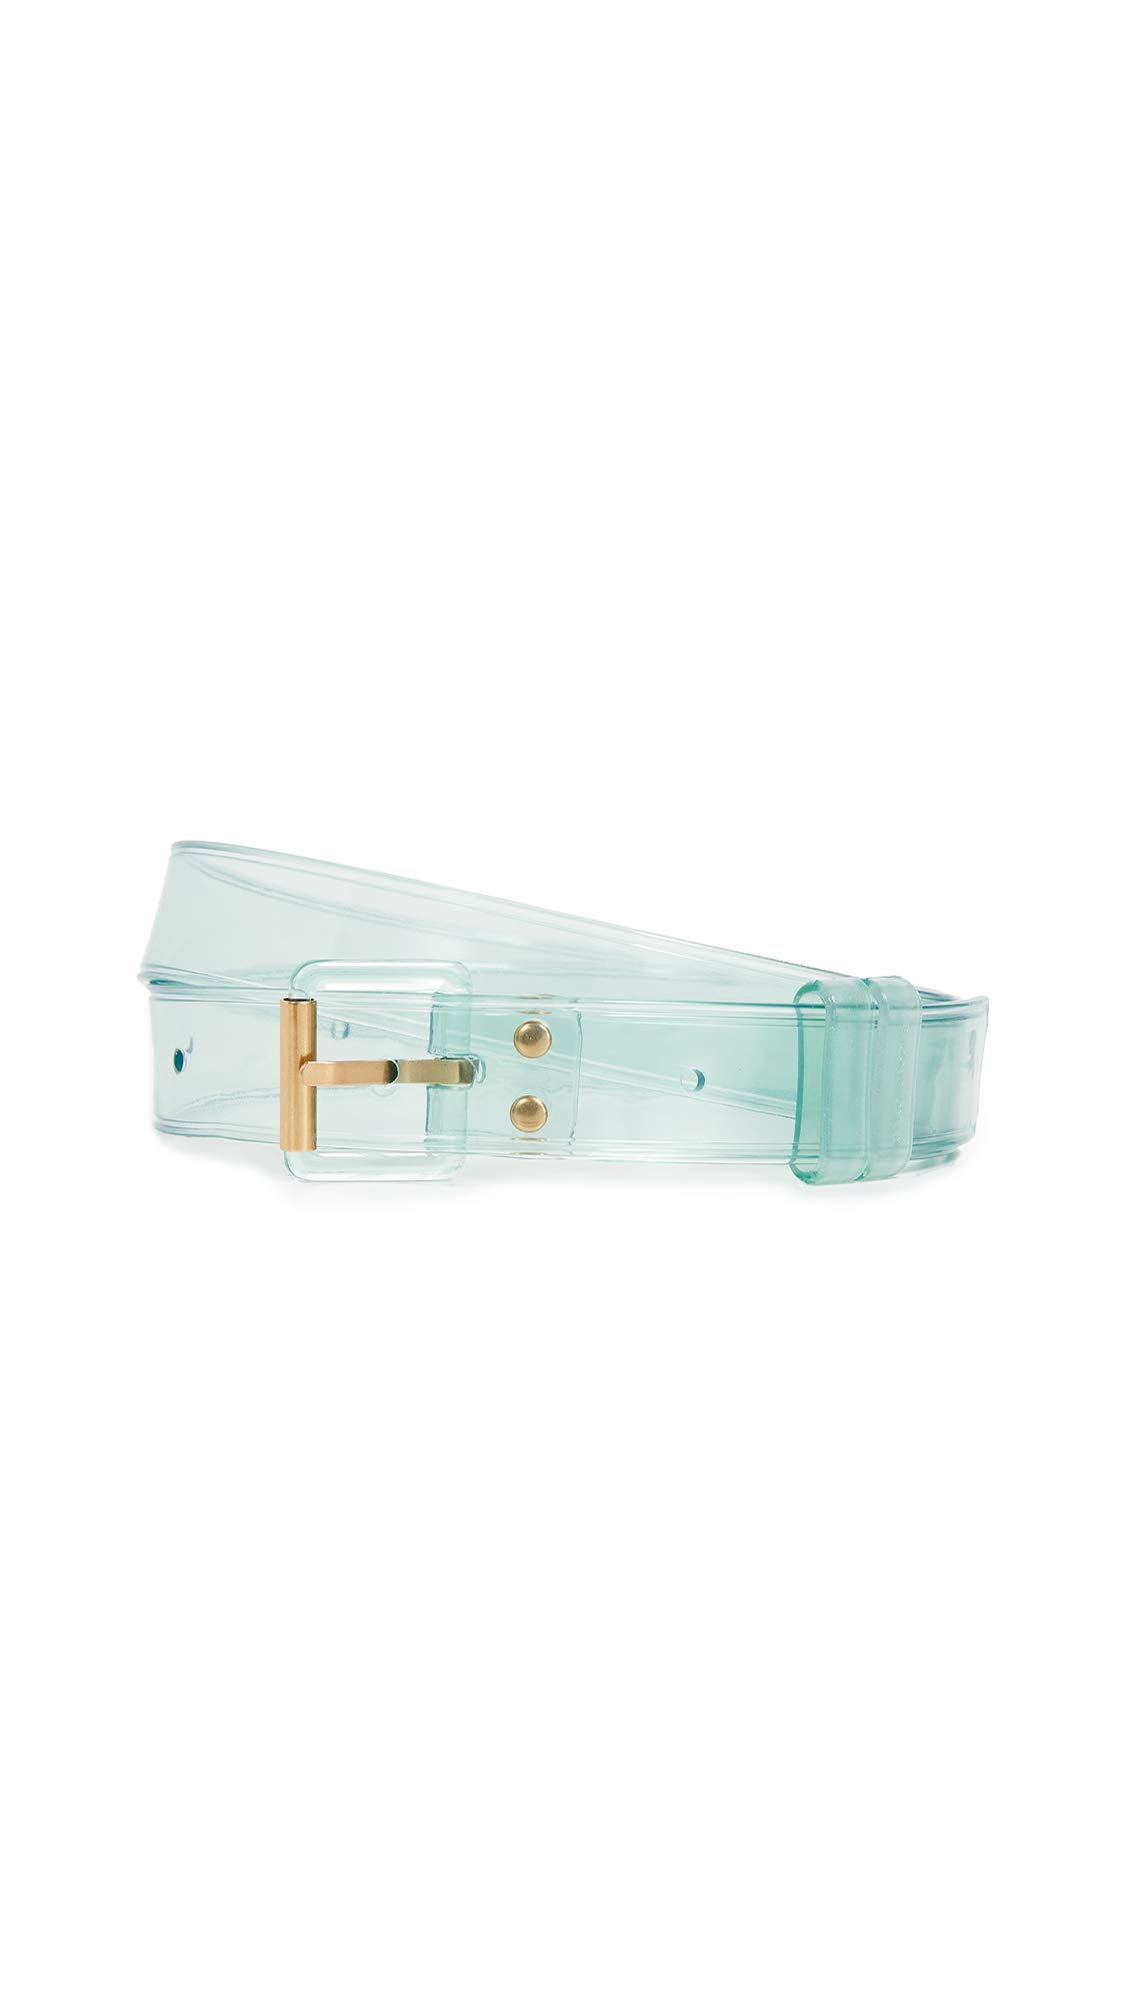 Marc Jacobs Women's The Jelly Belt, Light Blue, One Size